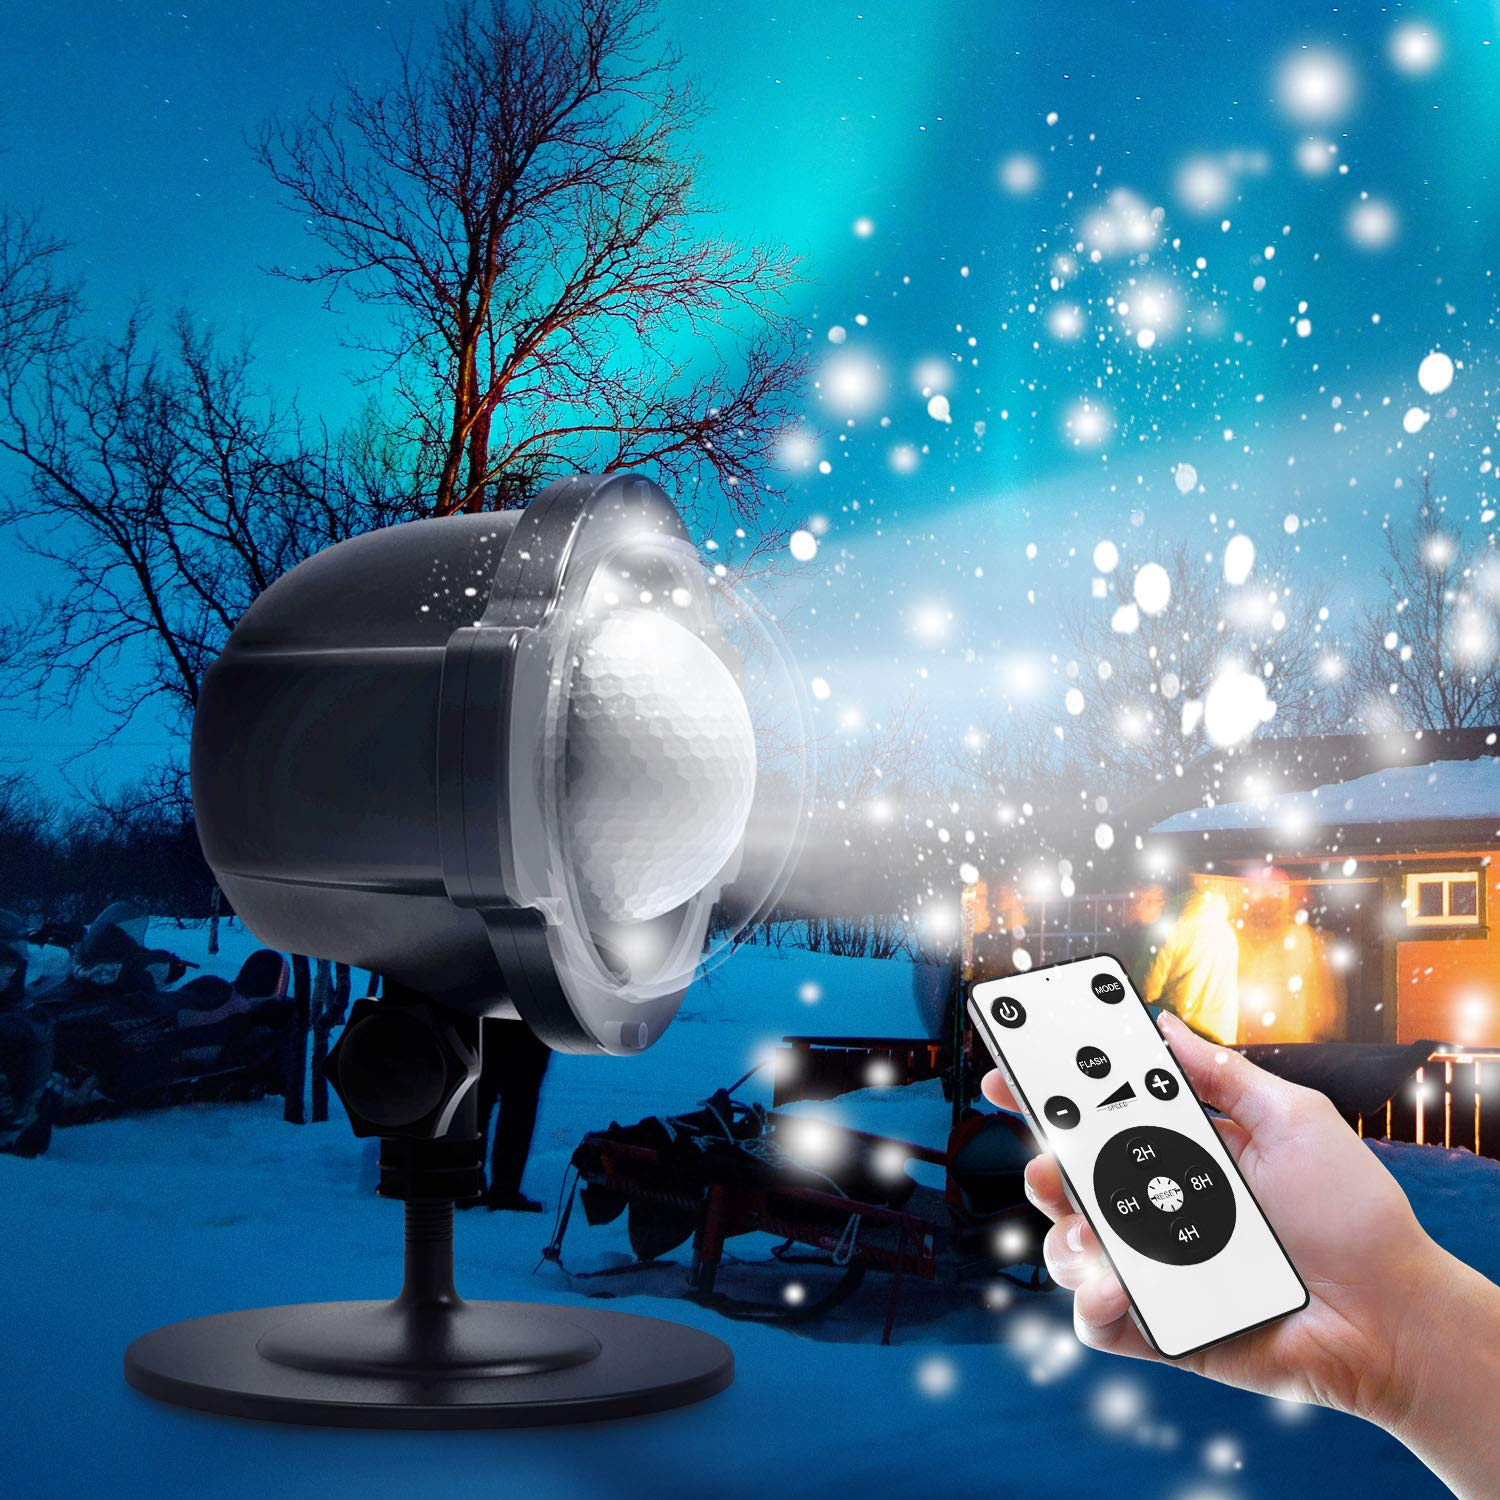 Christmas LED Snowflake Projector Decorations, Fenvella White Snow Falling Night Lights IP65 Waterproof Outdoor Indoor Landscape Decorative Lighting with Remote & Timer for Garden Party New Year Xmas